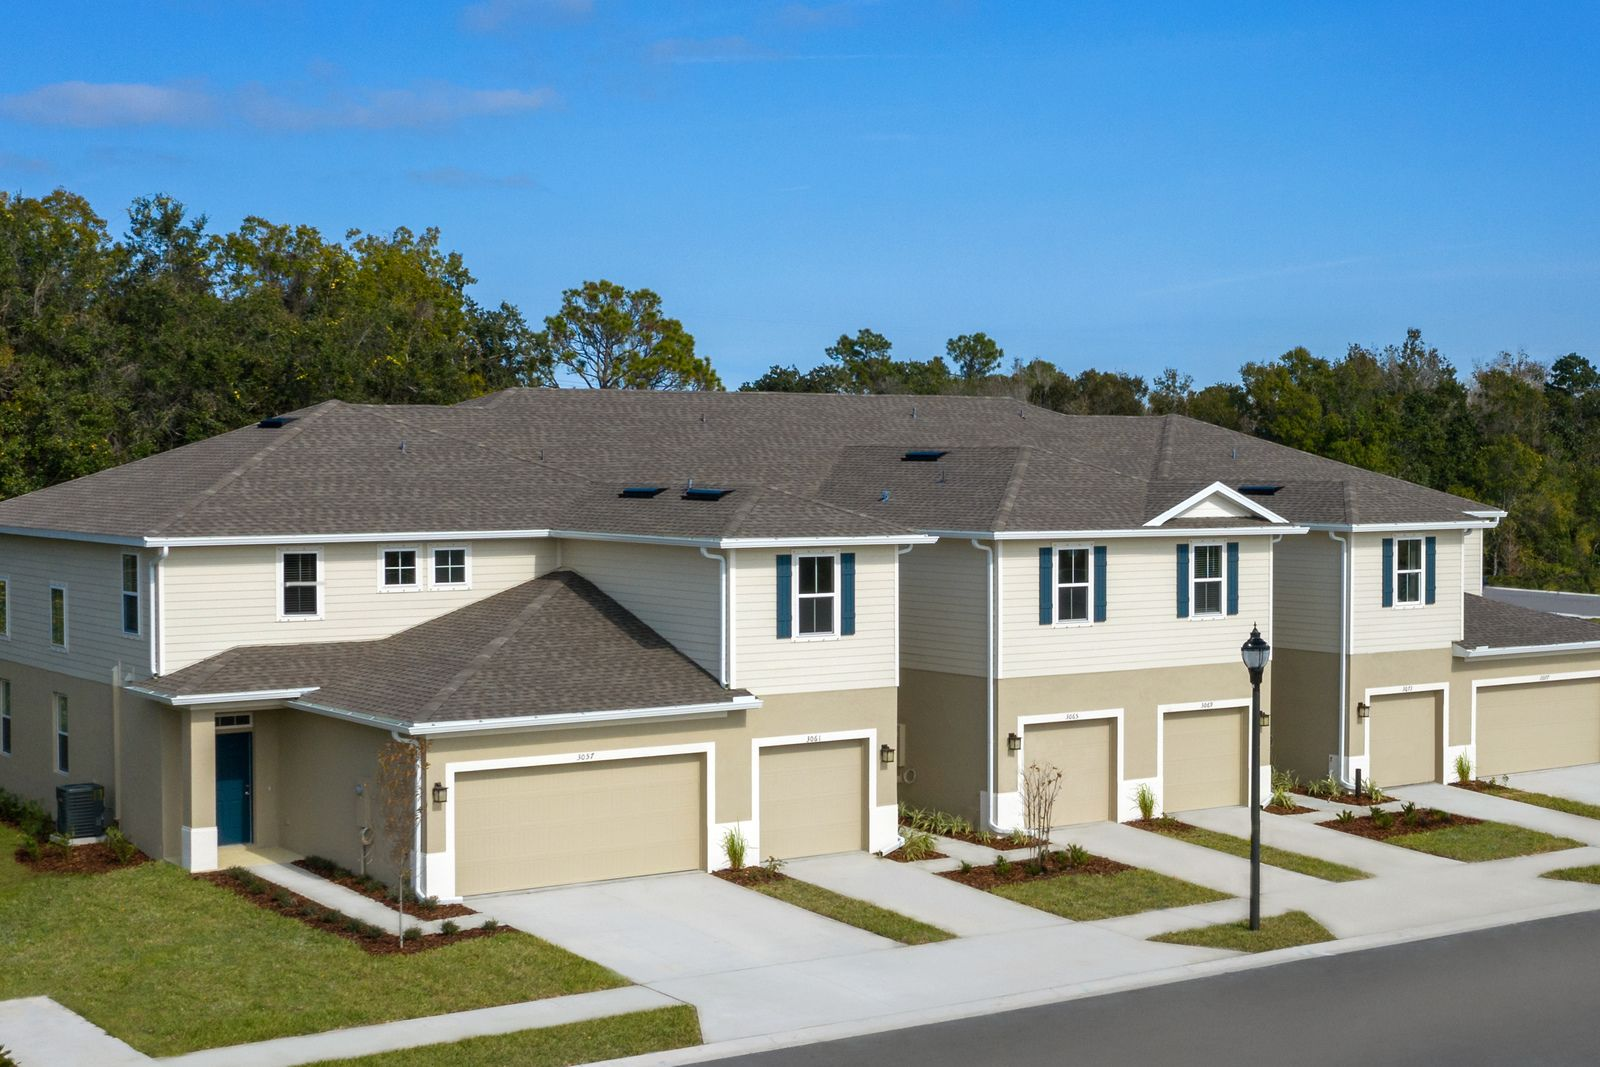 Welcome Home to The Preserve at Gulf Trace:Historically low interest rates keep your monthly payment low and our low HOA of $125/month includes cable, high-speed internet, lawn care, exterior paint, and roof replacement - an incredible value!